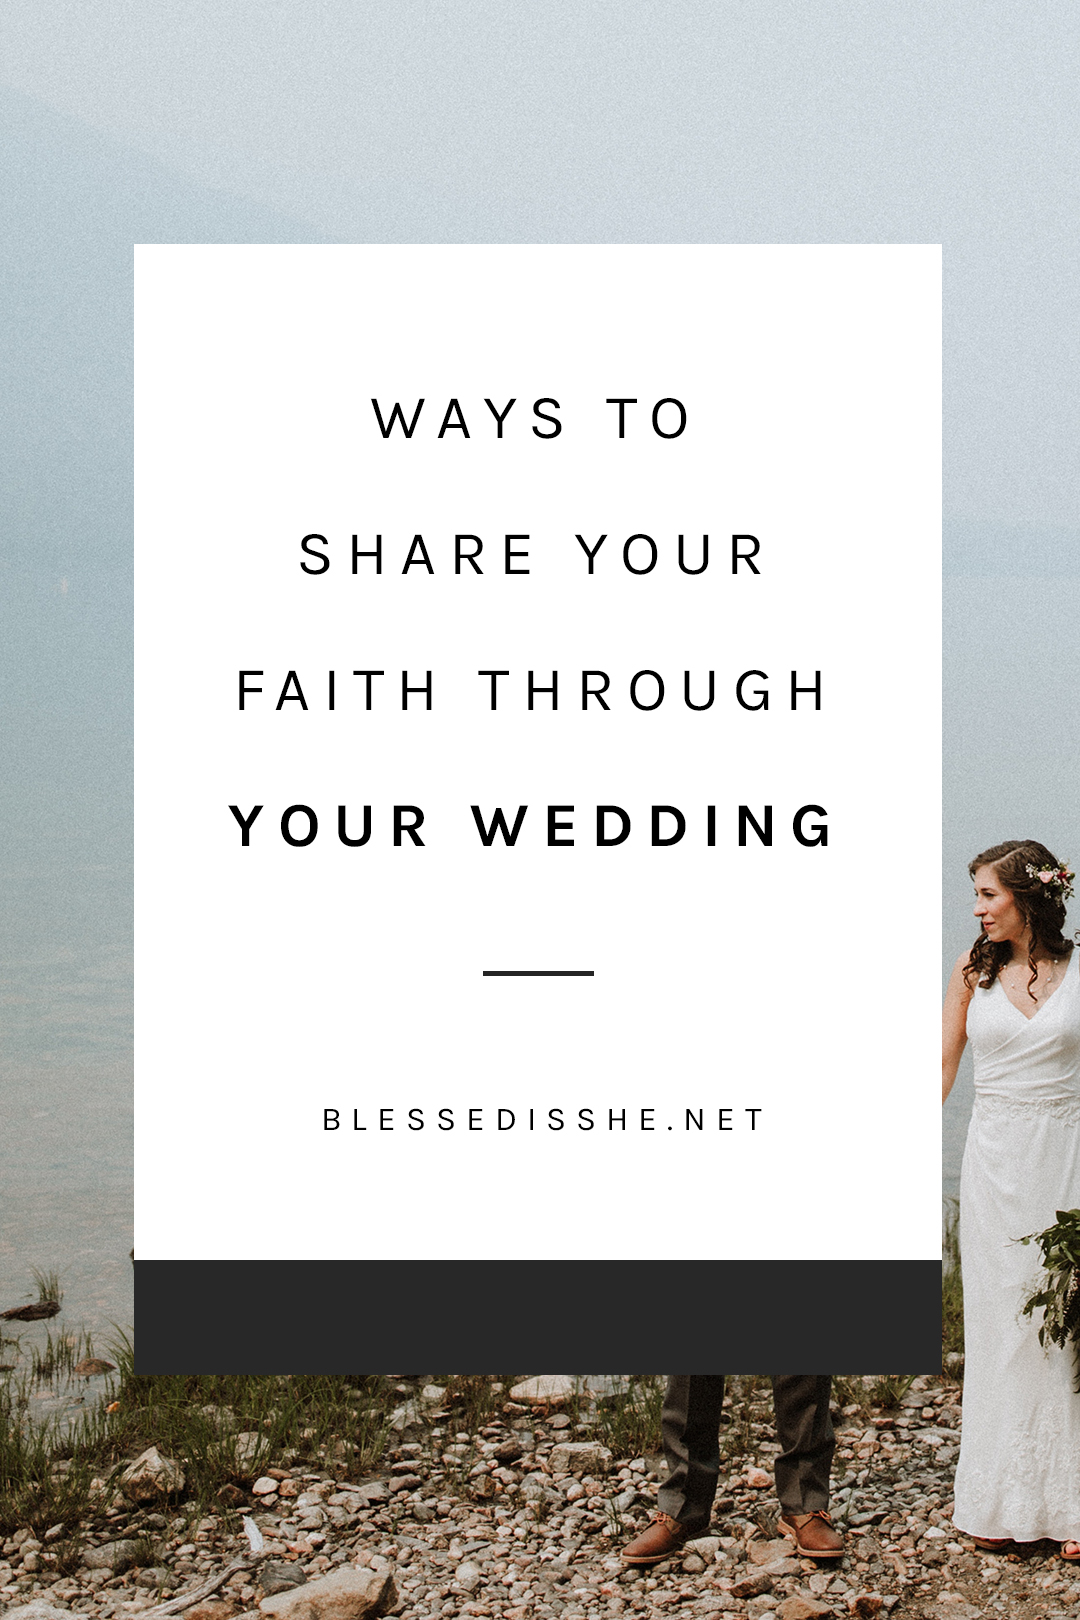 christian wedding planning